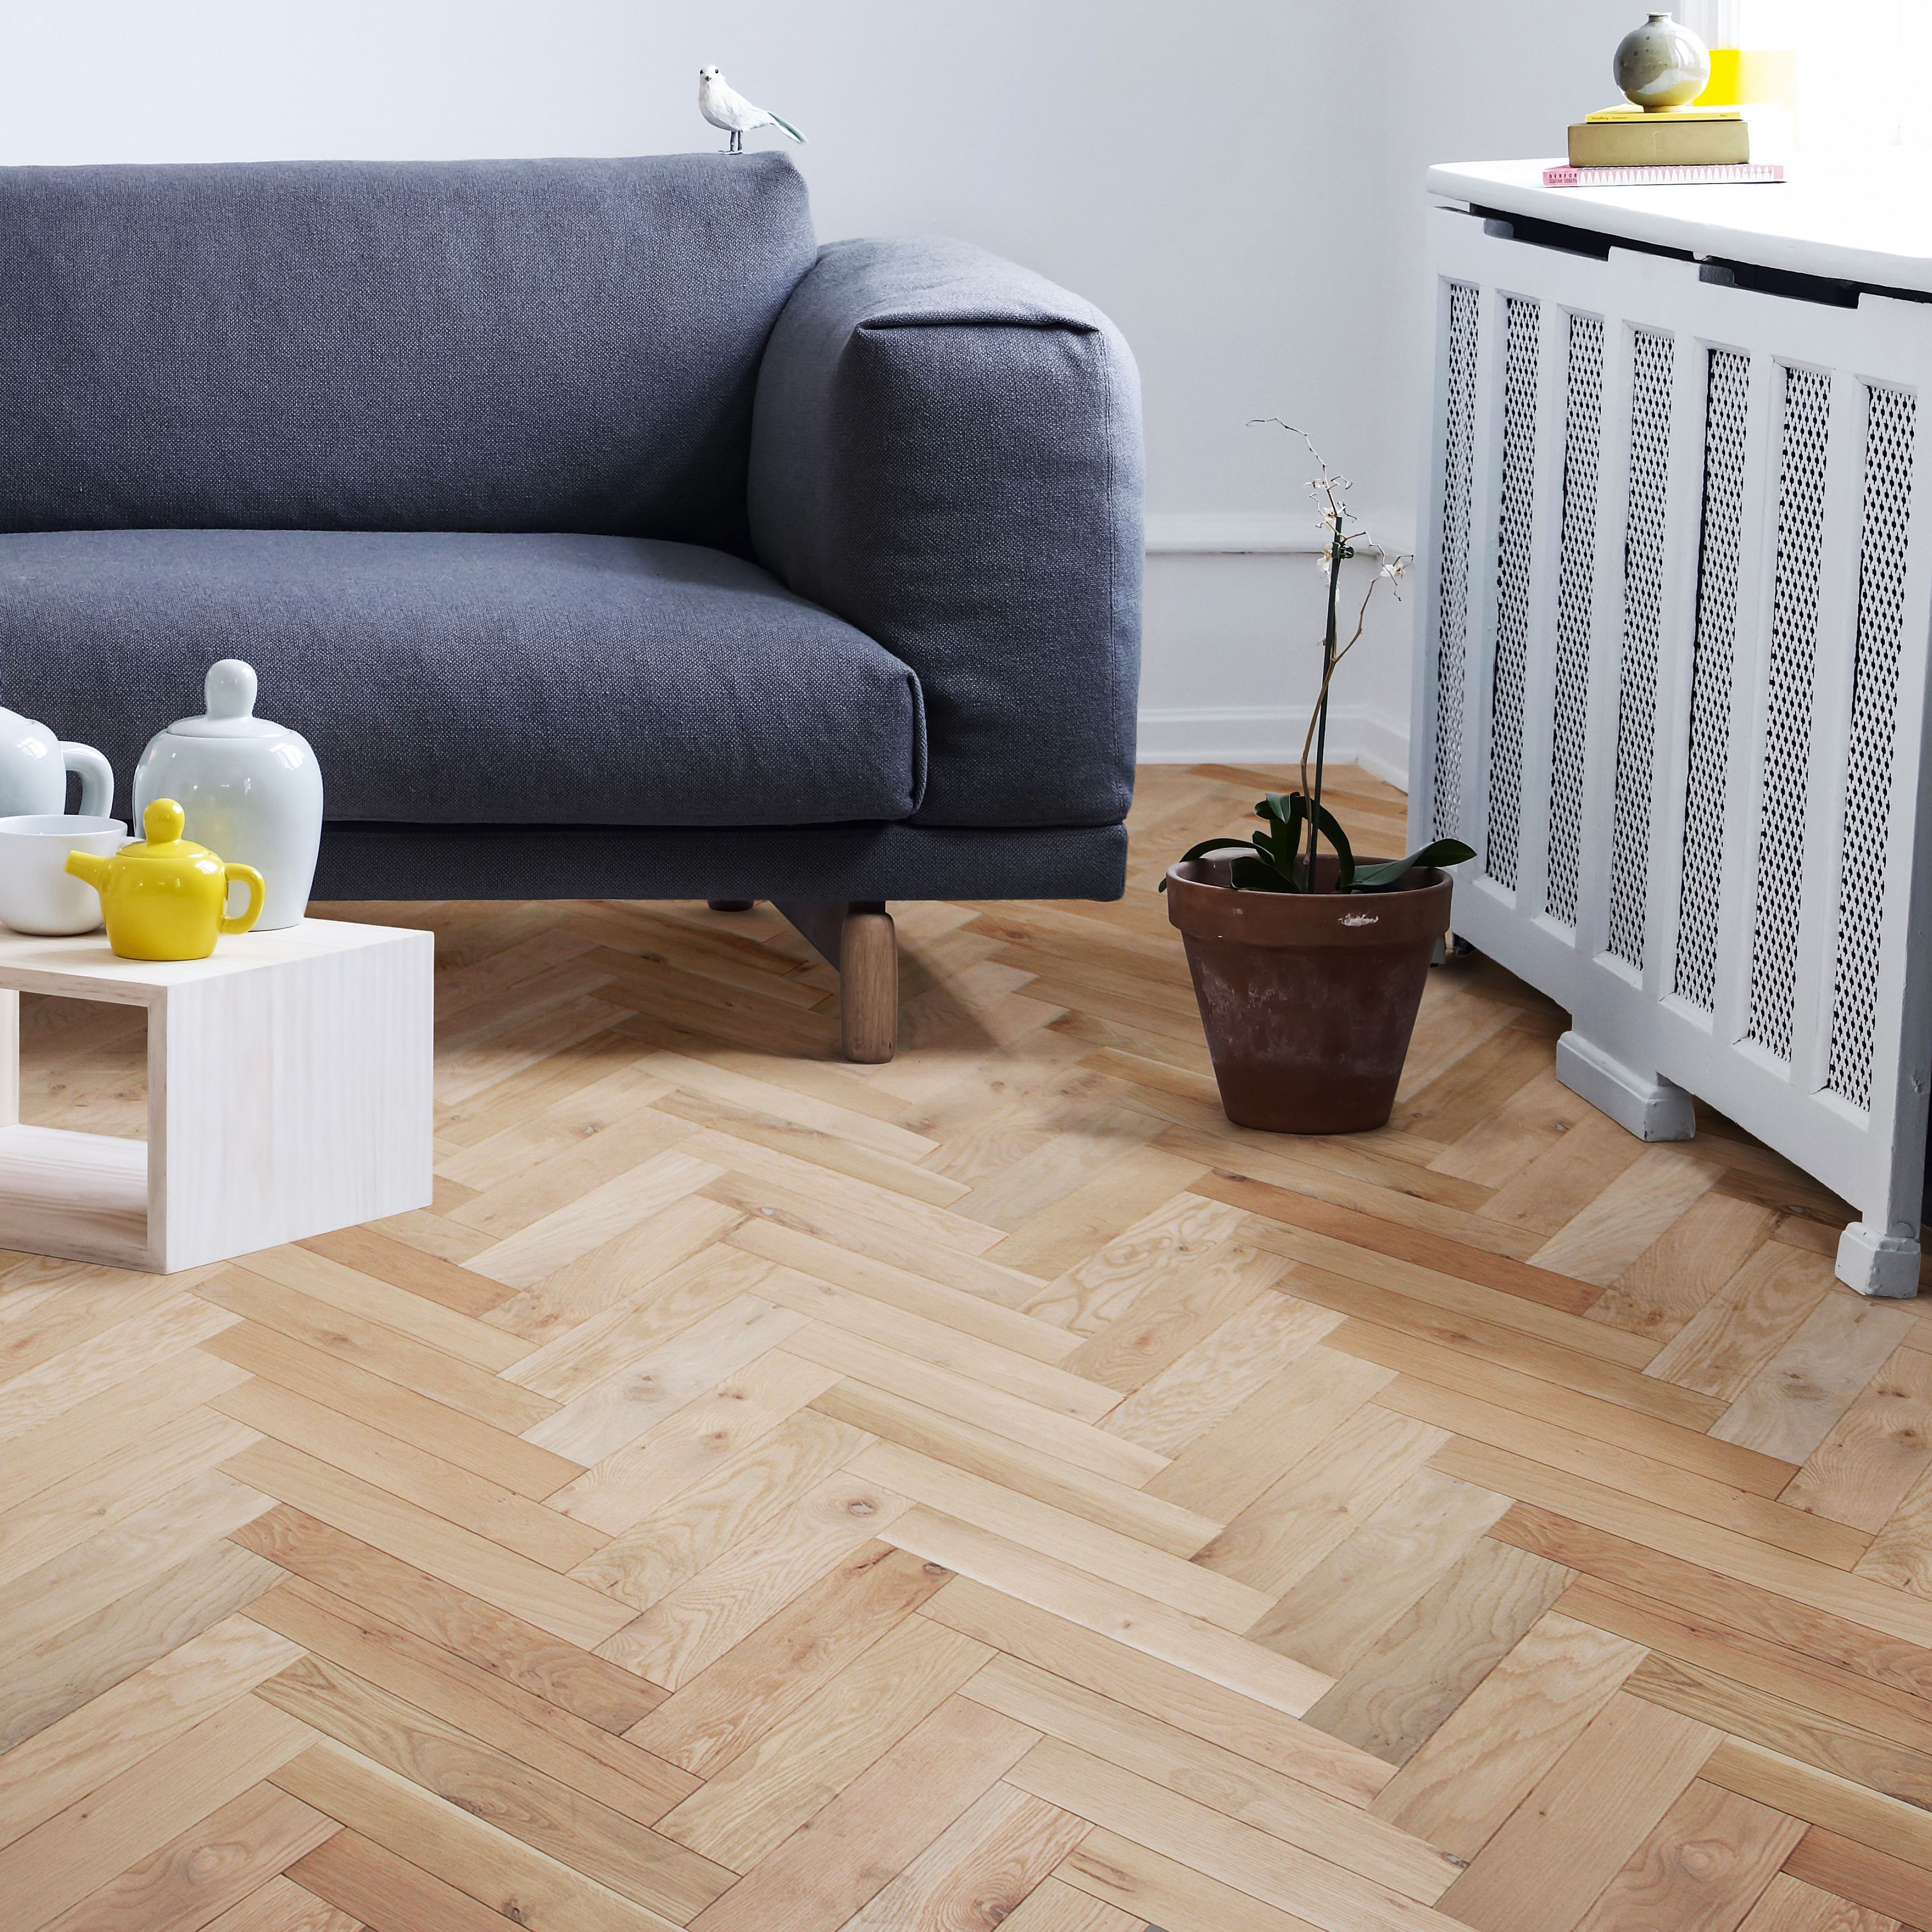 Update Your Living Room With Solid Oak Flooring For A Brighter Space